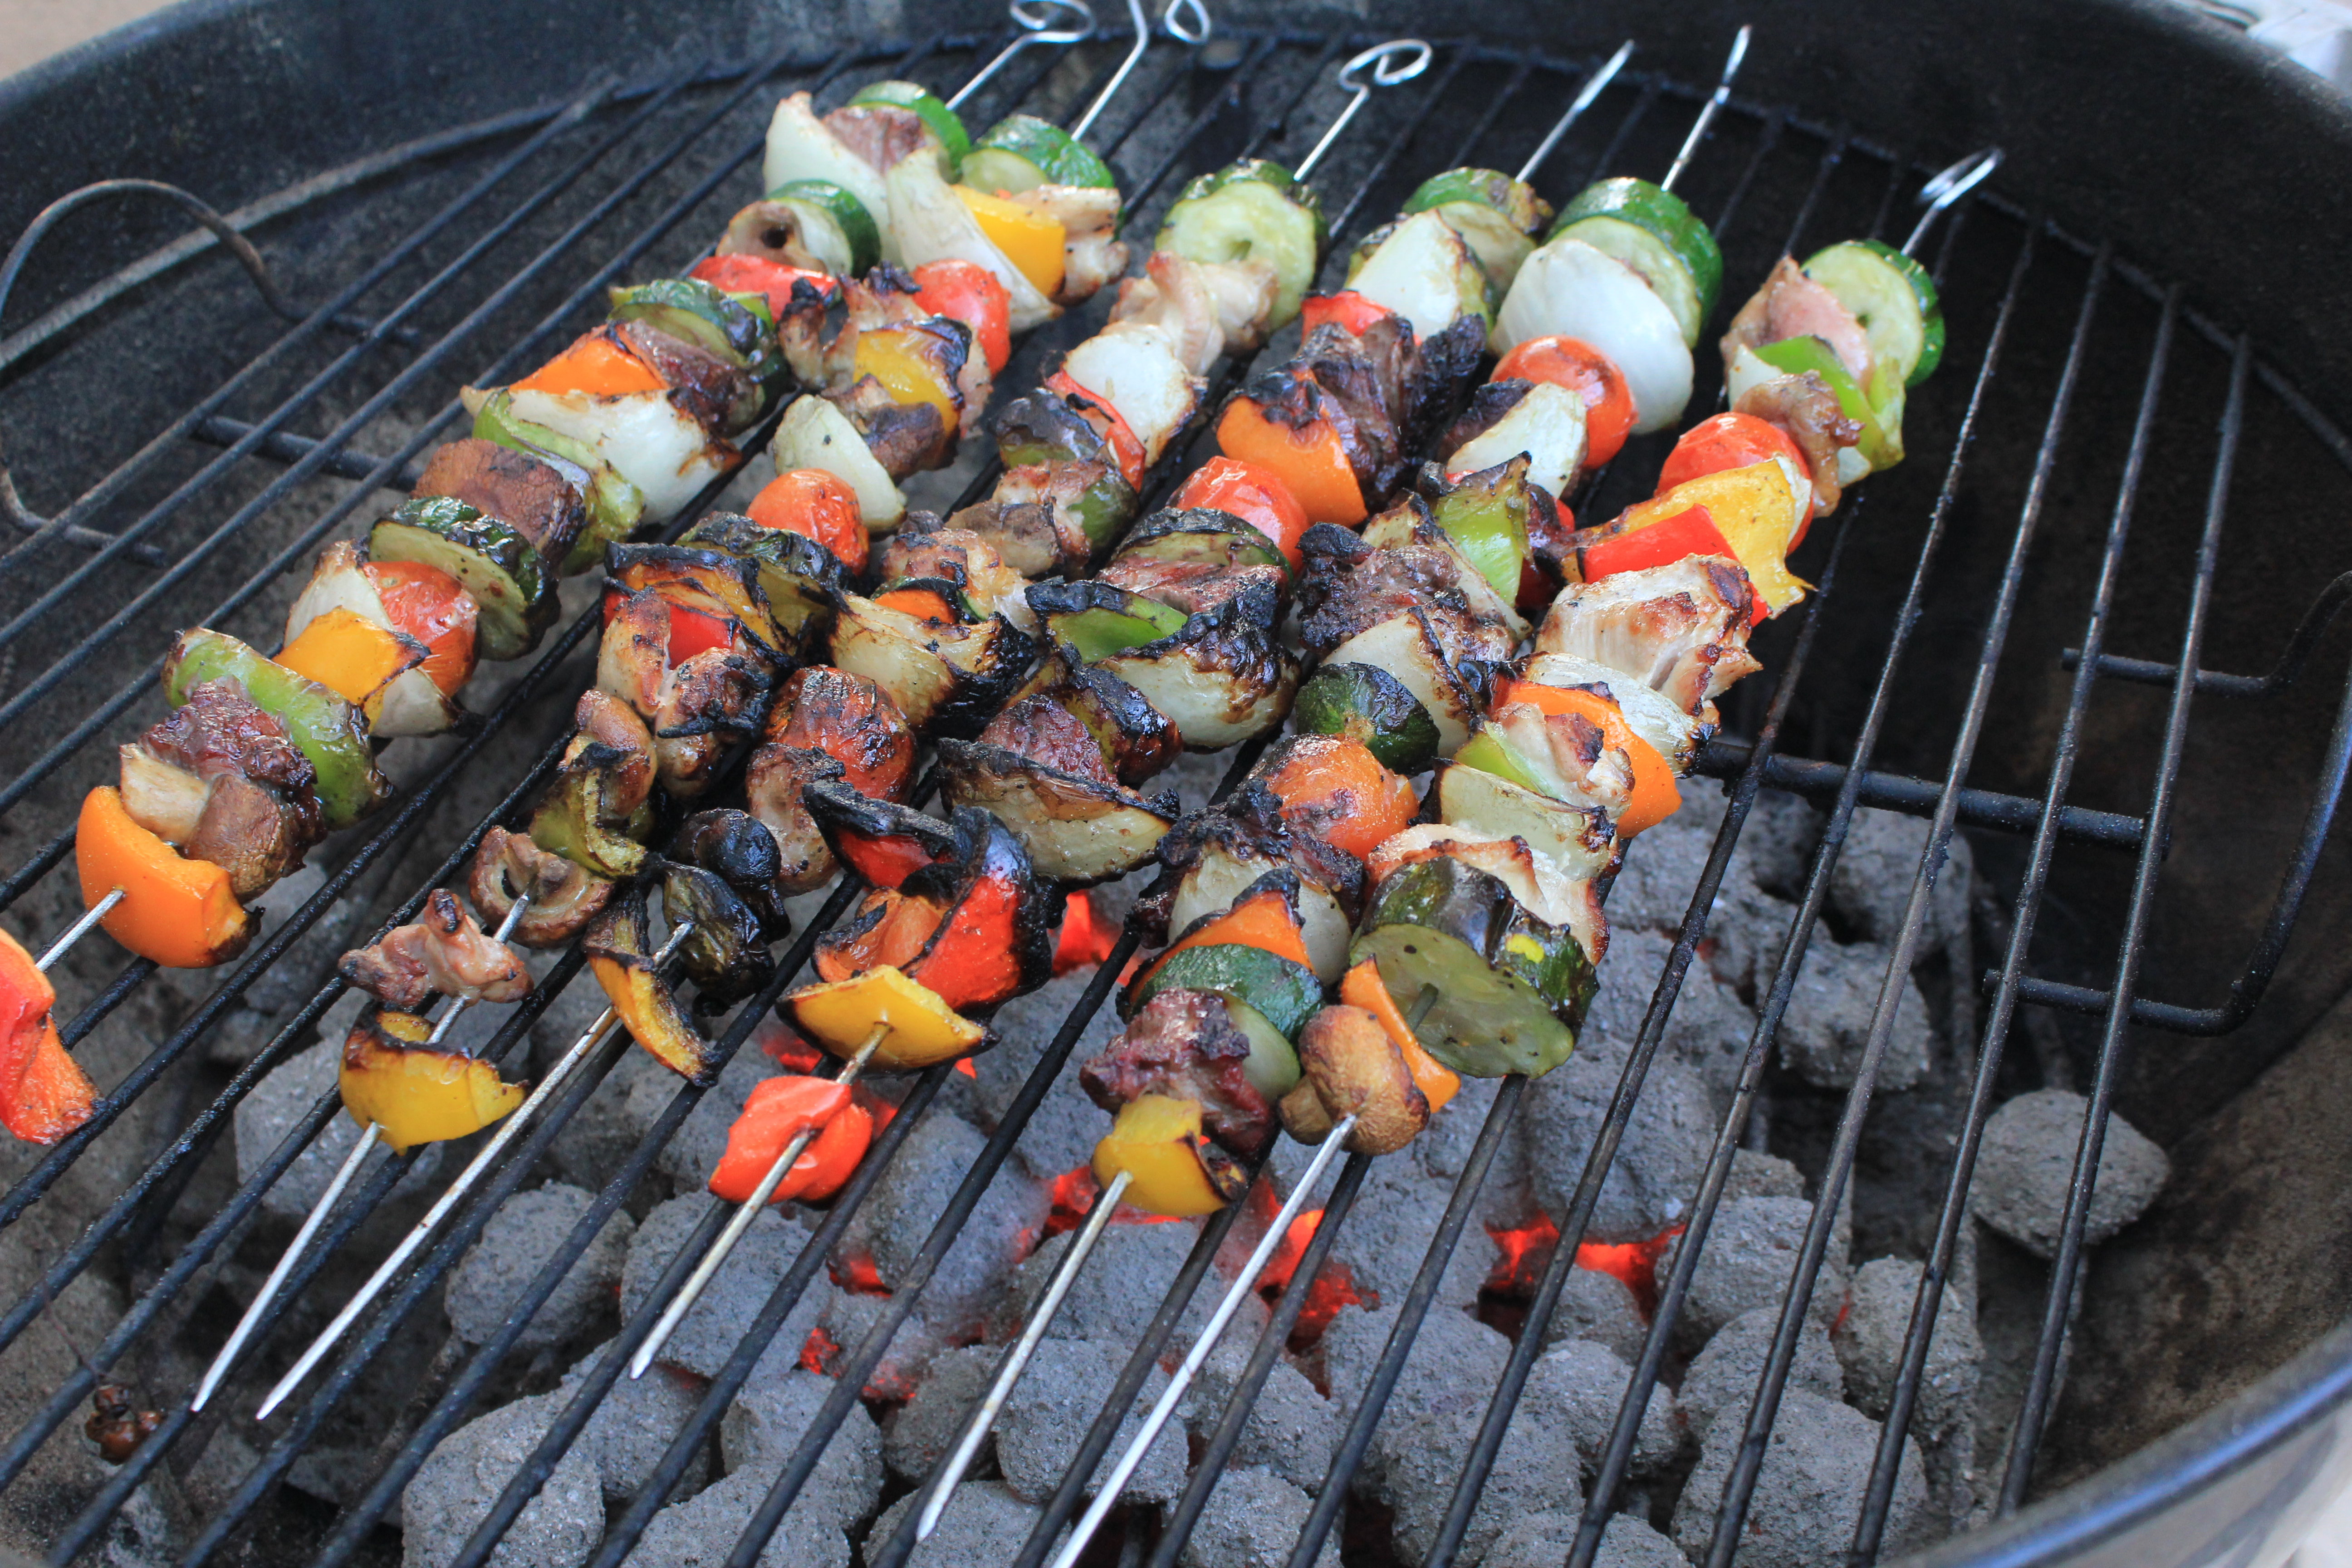 A casual french bbq with friends petanque brochette merguez and harissa celine 39 s cuisine - Pic a brochette ...